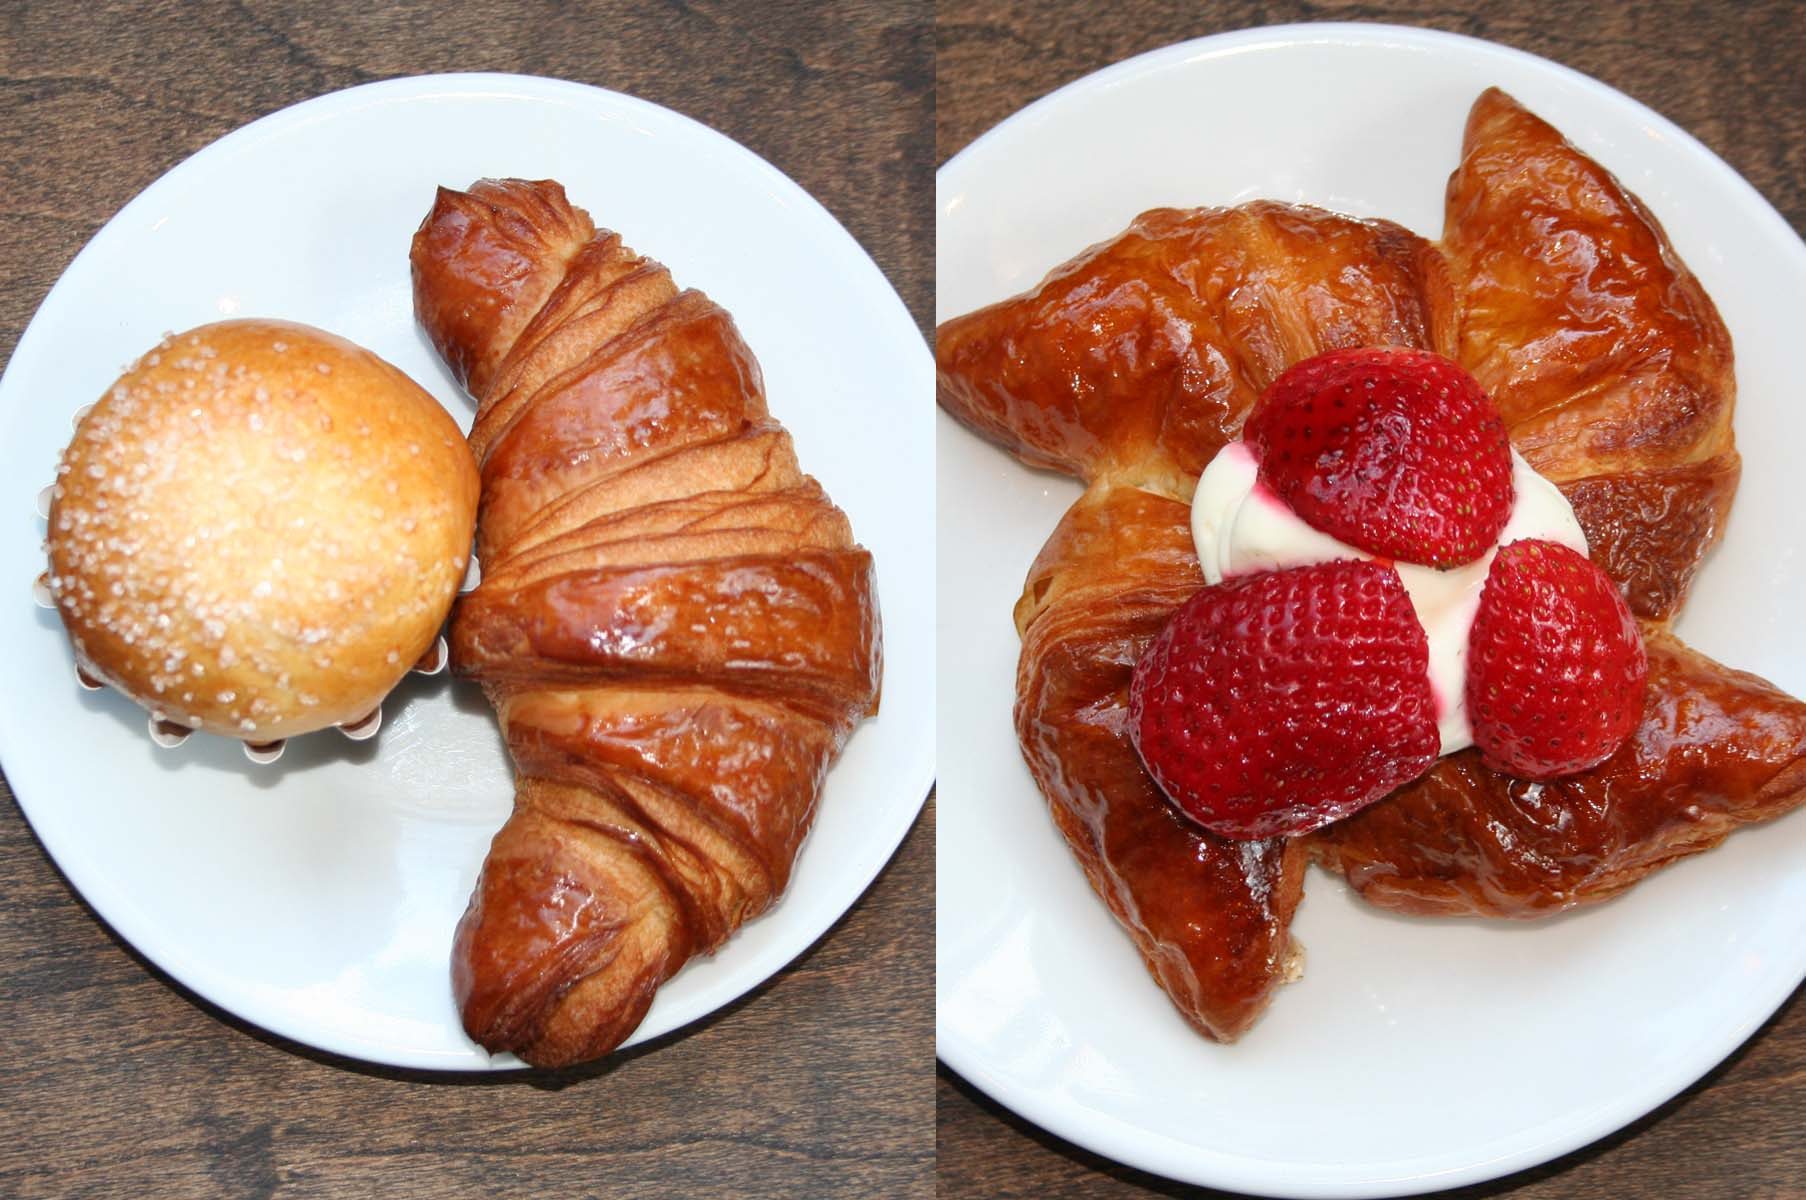 Zucker brötchen (sugar buns), croissants and strawberry custard pinwheels (l to r) will be among the shops morning offerings. (Photo: Mark Heckathorn/DC on Heels)